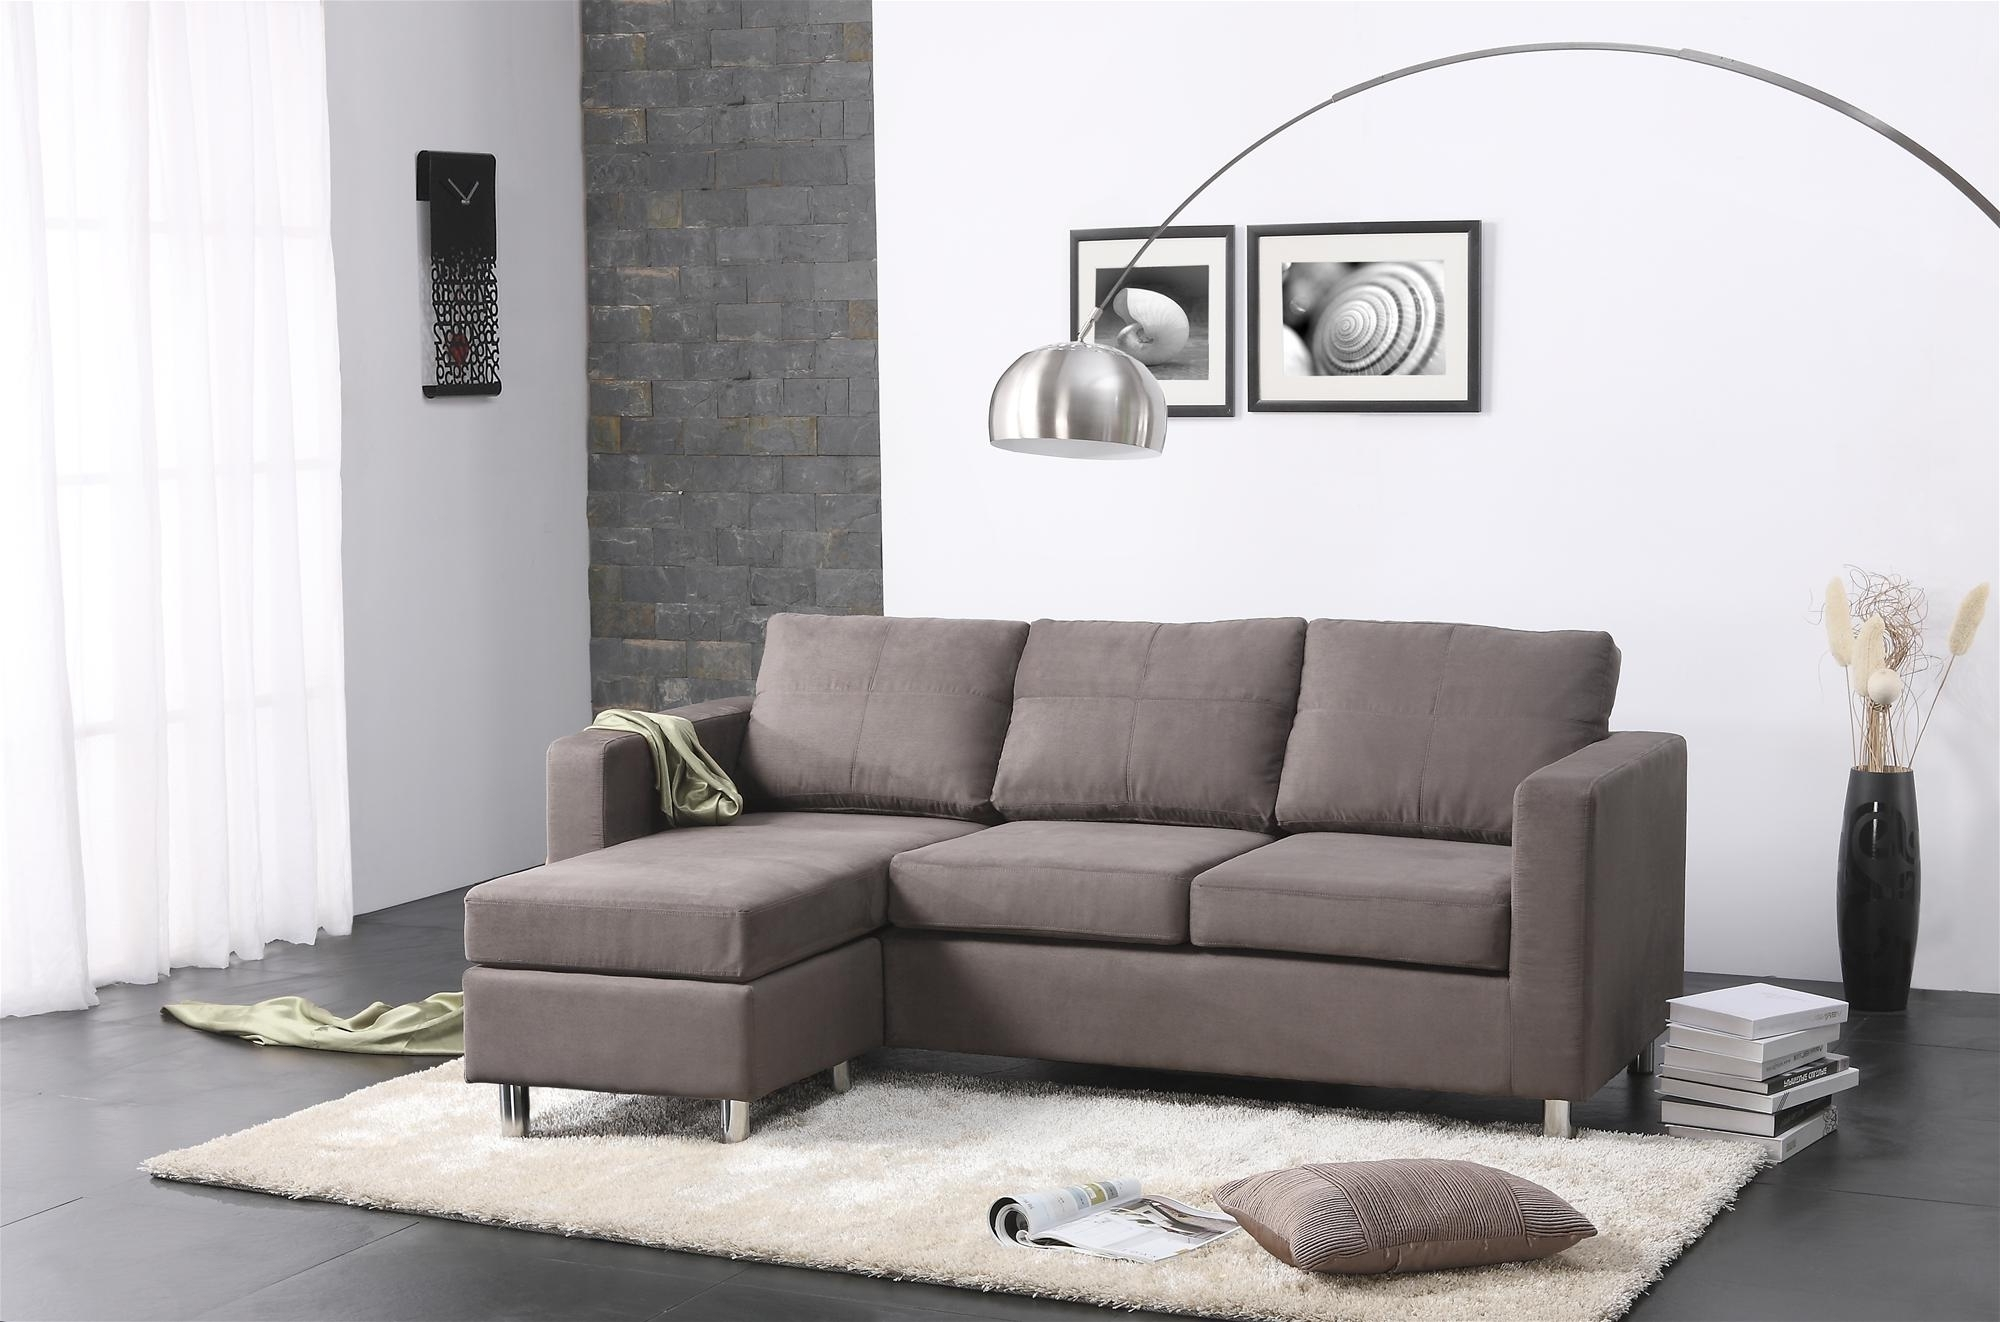 Sofa : Small Sofas For Small Spaces Tiny Sleeper Sofa Retro Sofa Inside 2018 Sectional Sofas For Small Areas (View 8 of 20)